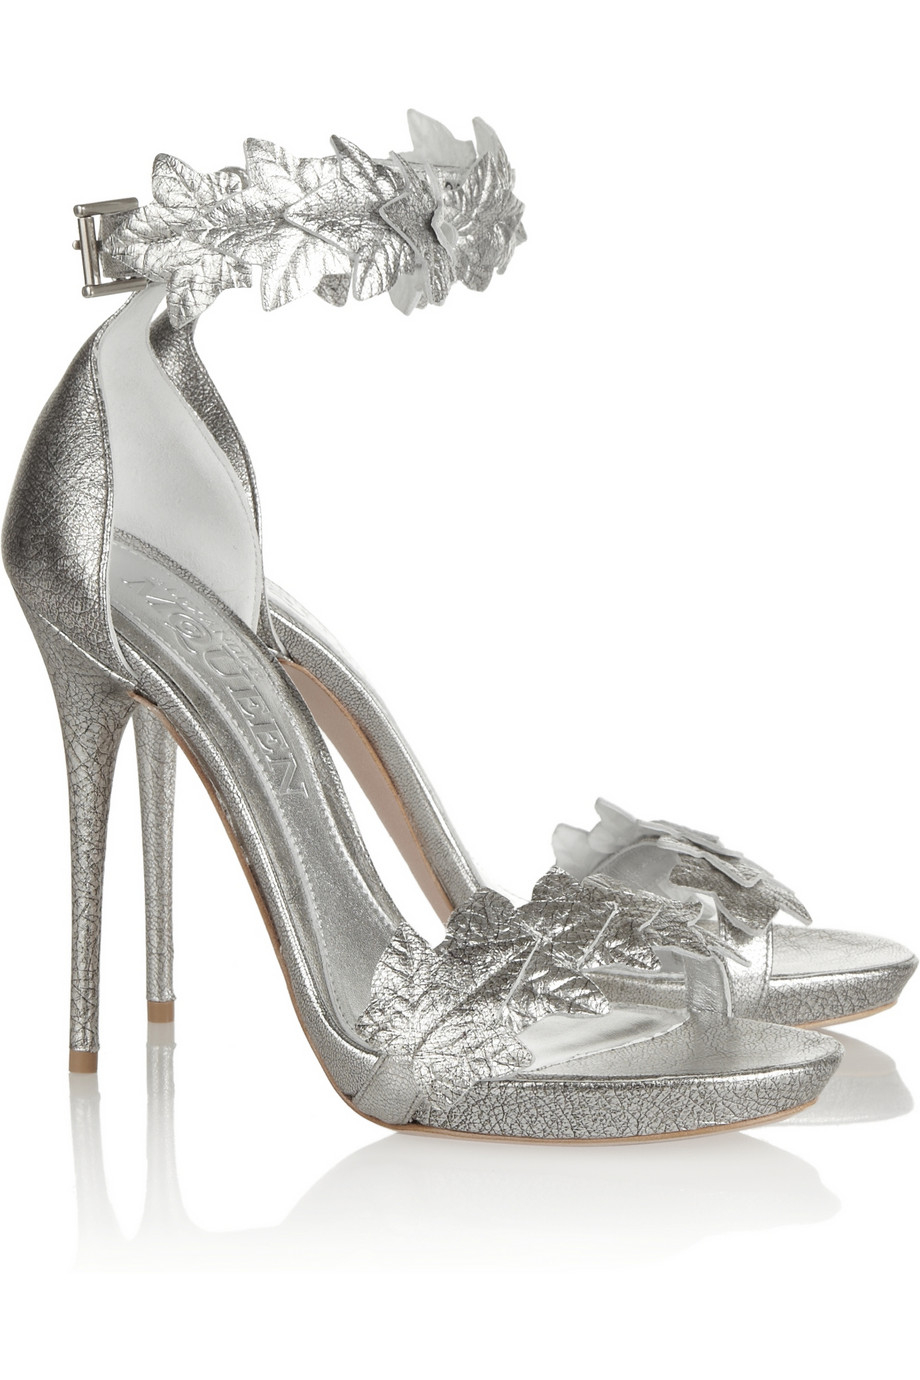 Alexander McQueen Metallic Leather Pumps cheap very cheap nrZjHt4XY